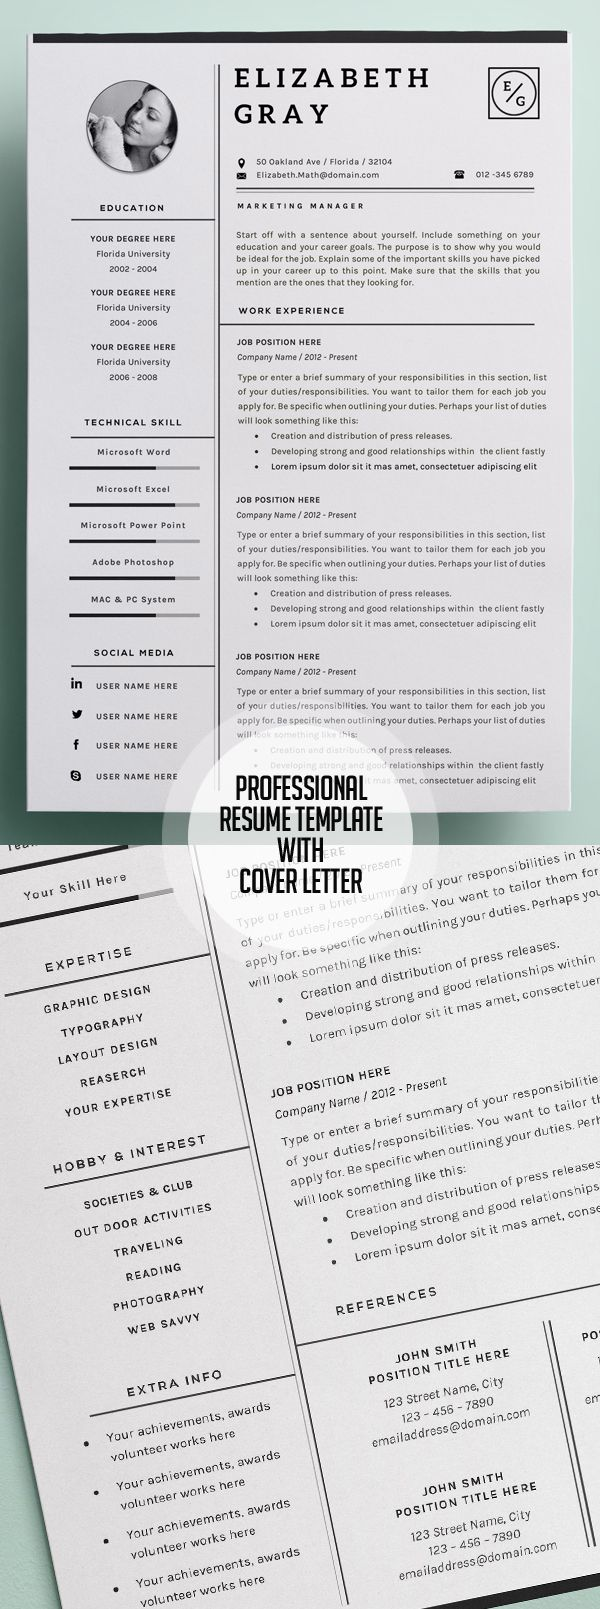 Opposenewapstandardsus  Ravishing  Resume Ideas On Pinterest  Resume Resume Templates And  With Hot Professional And Modern Resume Template With Page Cover Cvtemplate With Endearing Retail Sales Associate Job Description Resume Also Caregiving Resume In Addition Courier Resume And Bank Teller Job Description Resume As Well As Building The Perfect Resume Additionally Resume Additional Information From Pinterestcom With Opposenewapstandardsus  Hot  Resume Ideas On Pinterest  Resume Resume Templates And  With Endearing Professional And Modern Resume Template With Page Cover Cvtemplate And Ravishing Retail Sales Associate Job Description Resume Also Caregiving Resume In Addition Courier Resume From Pinterestcom